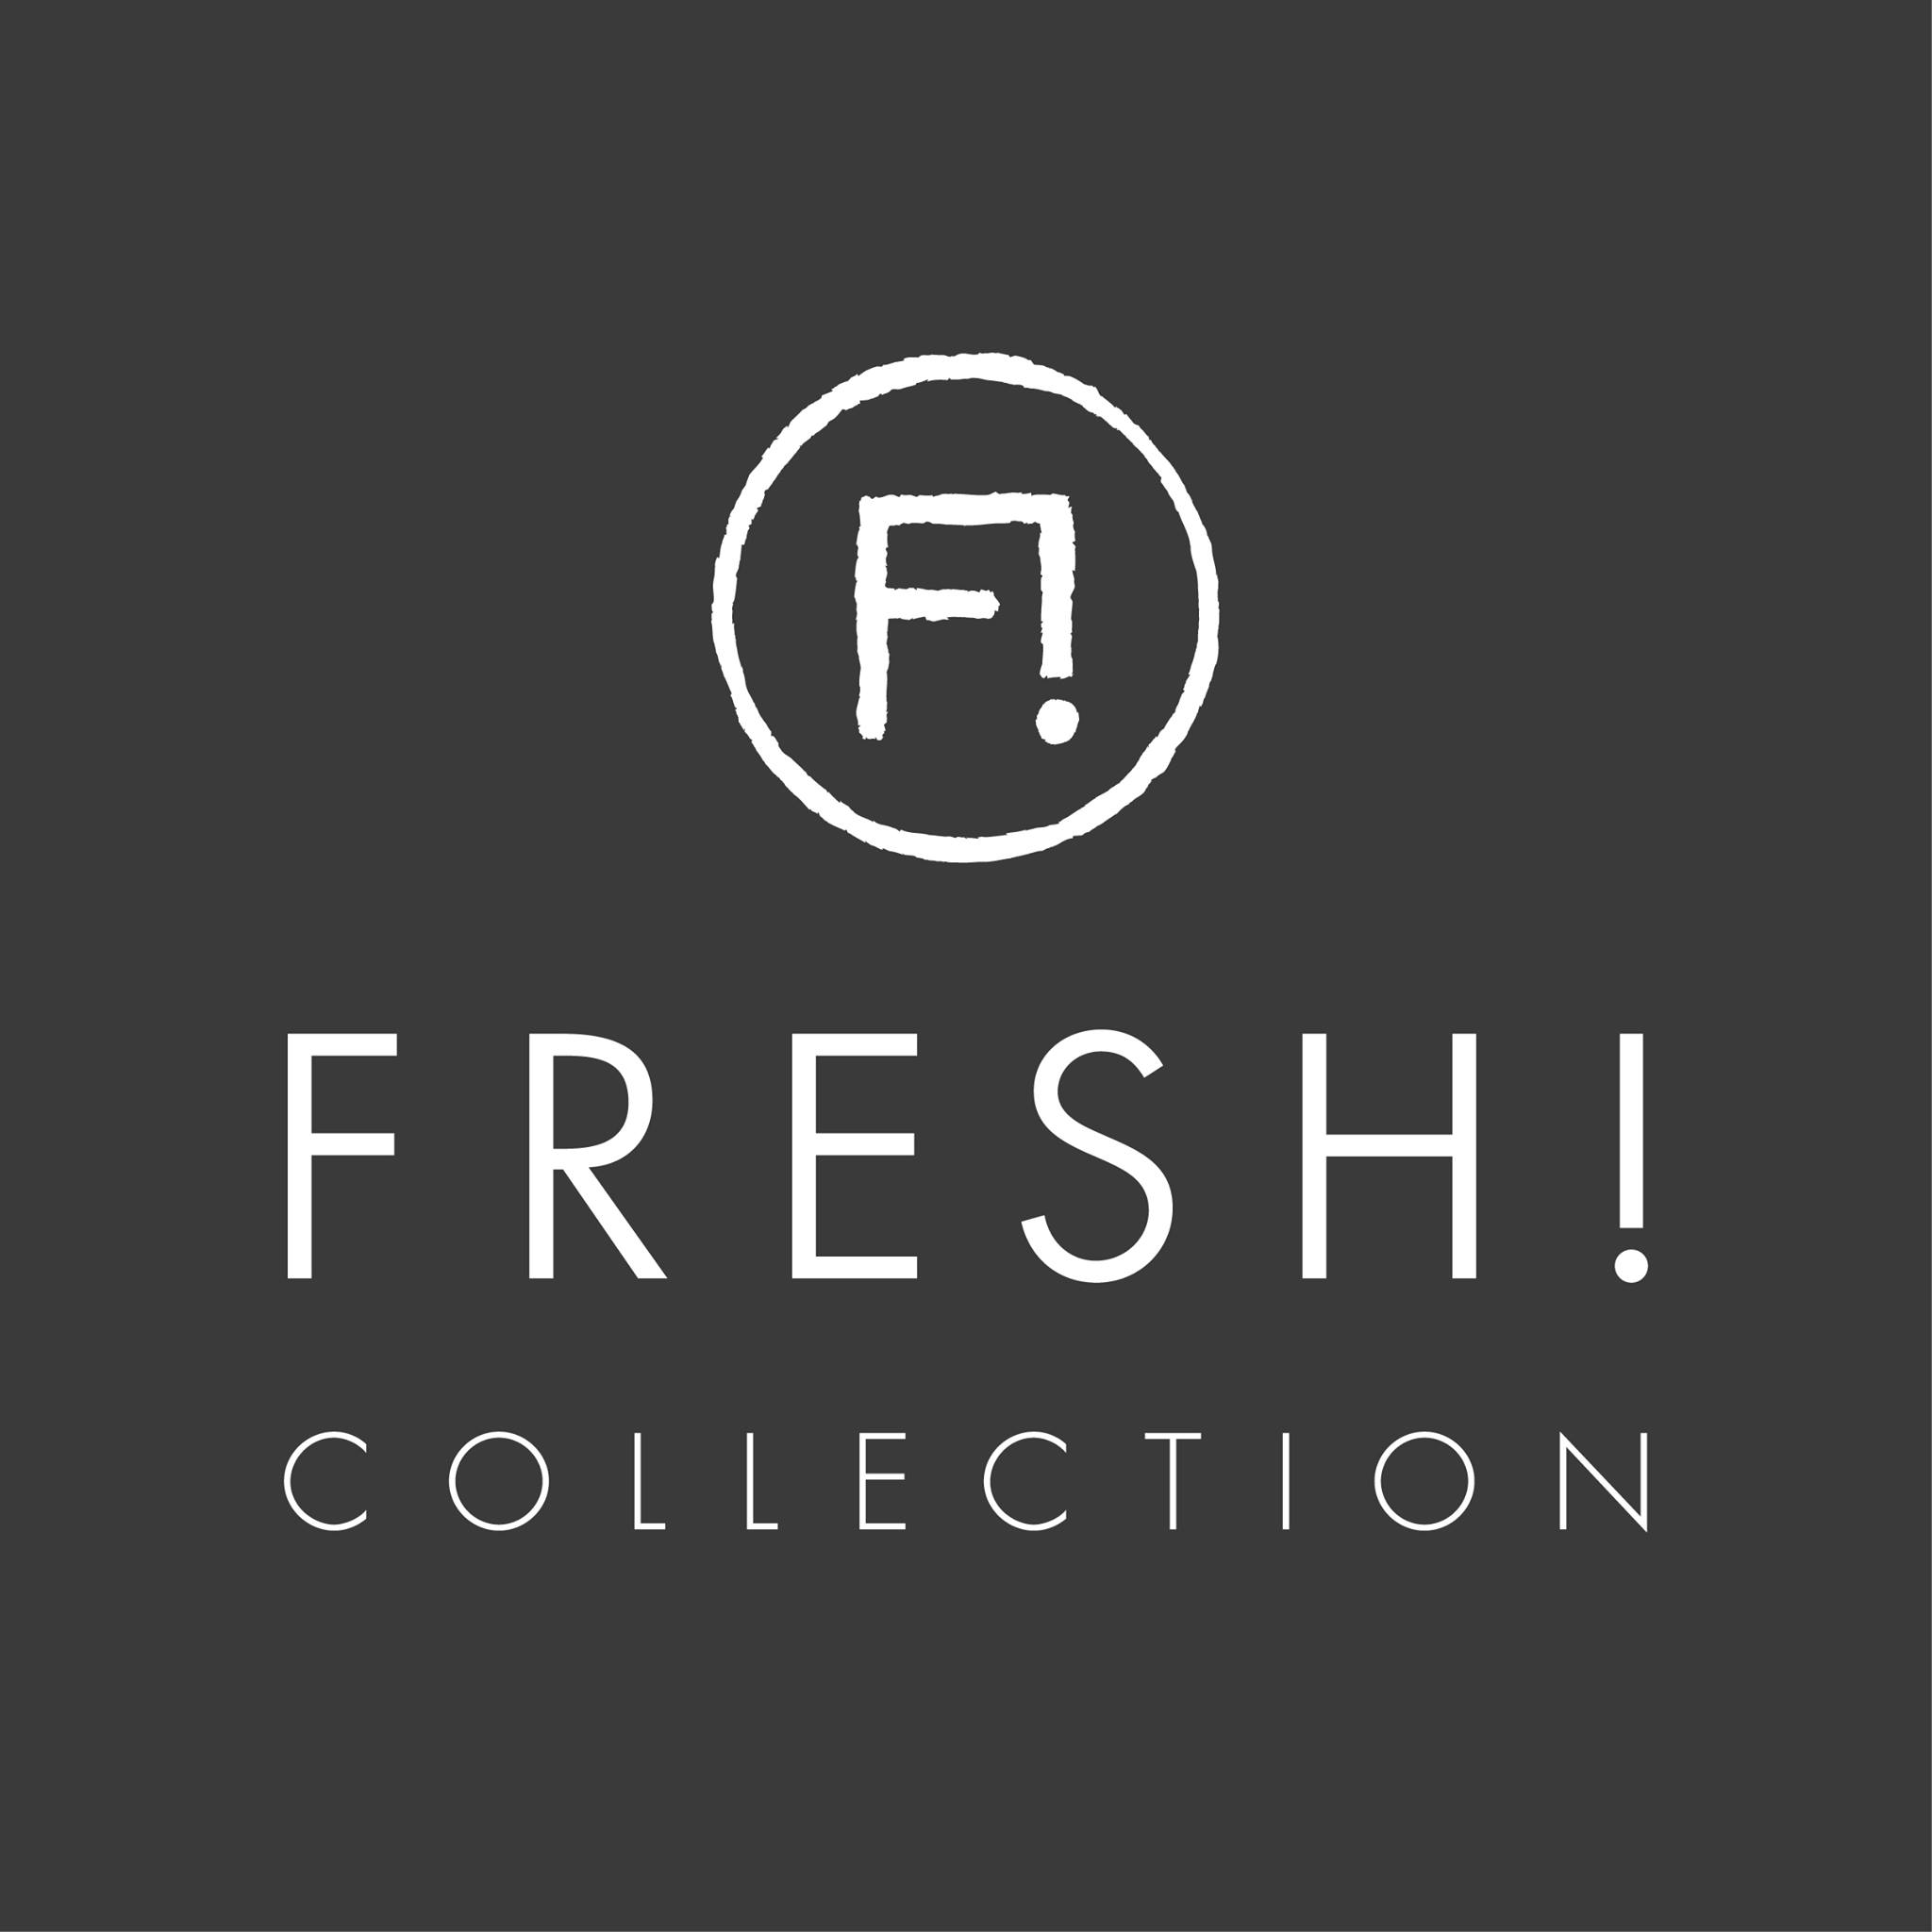 FRESH! collection